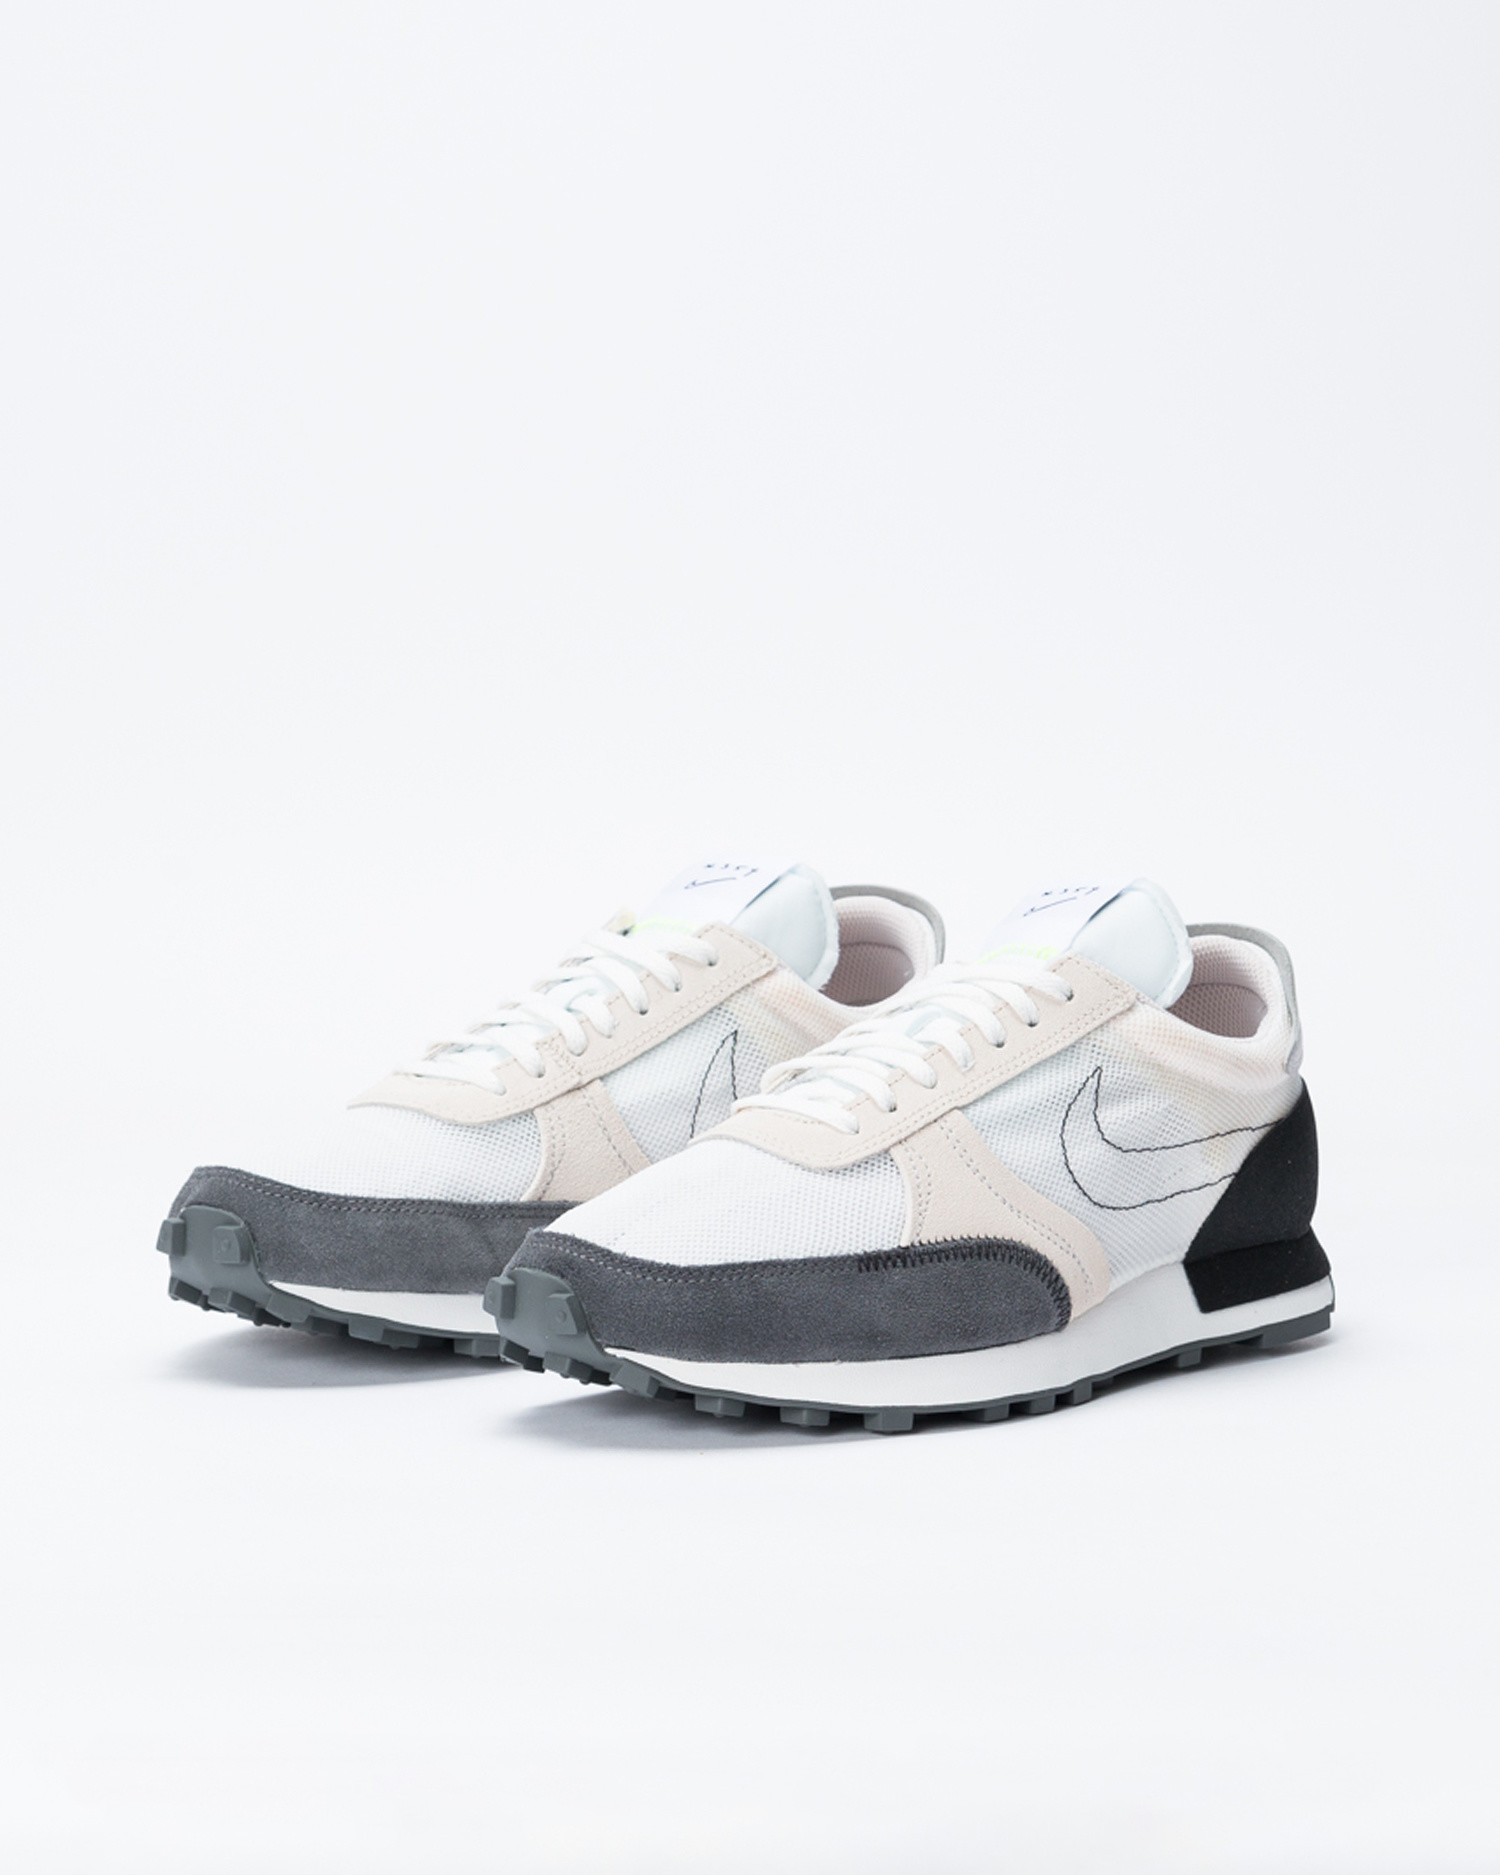 Nike Daybreak Type summit white/black-lt orewood brn